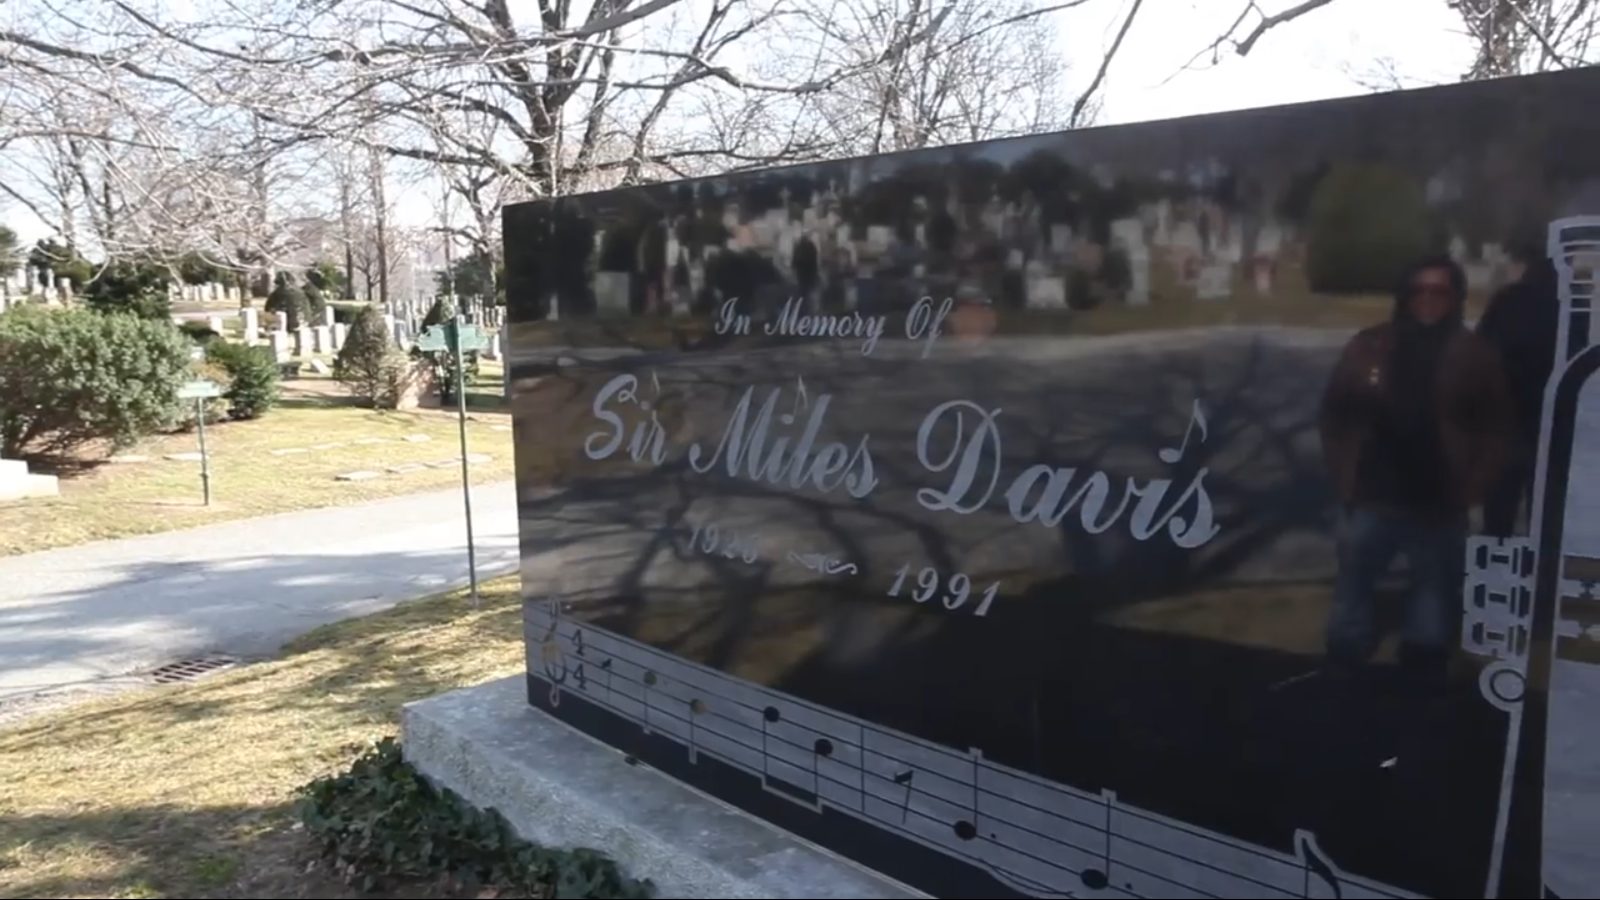 Miles resting place